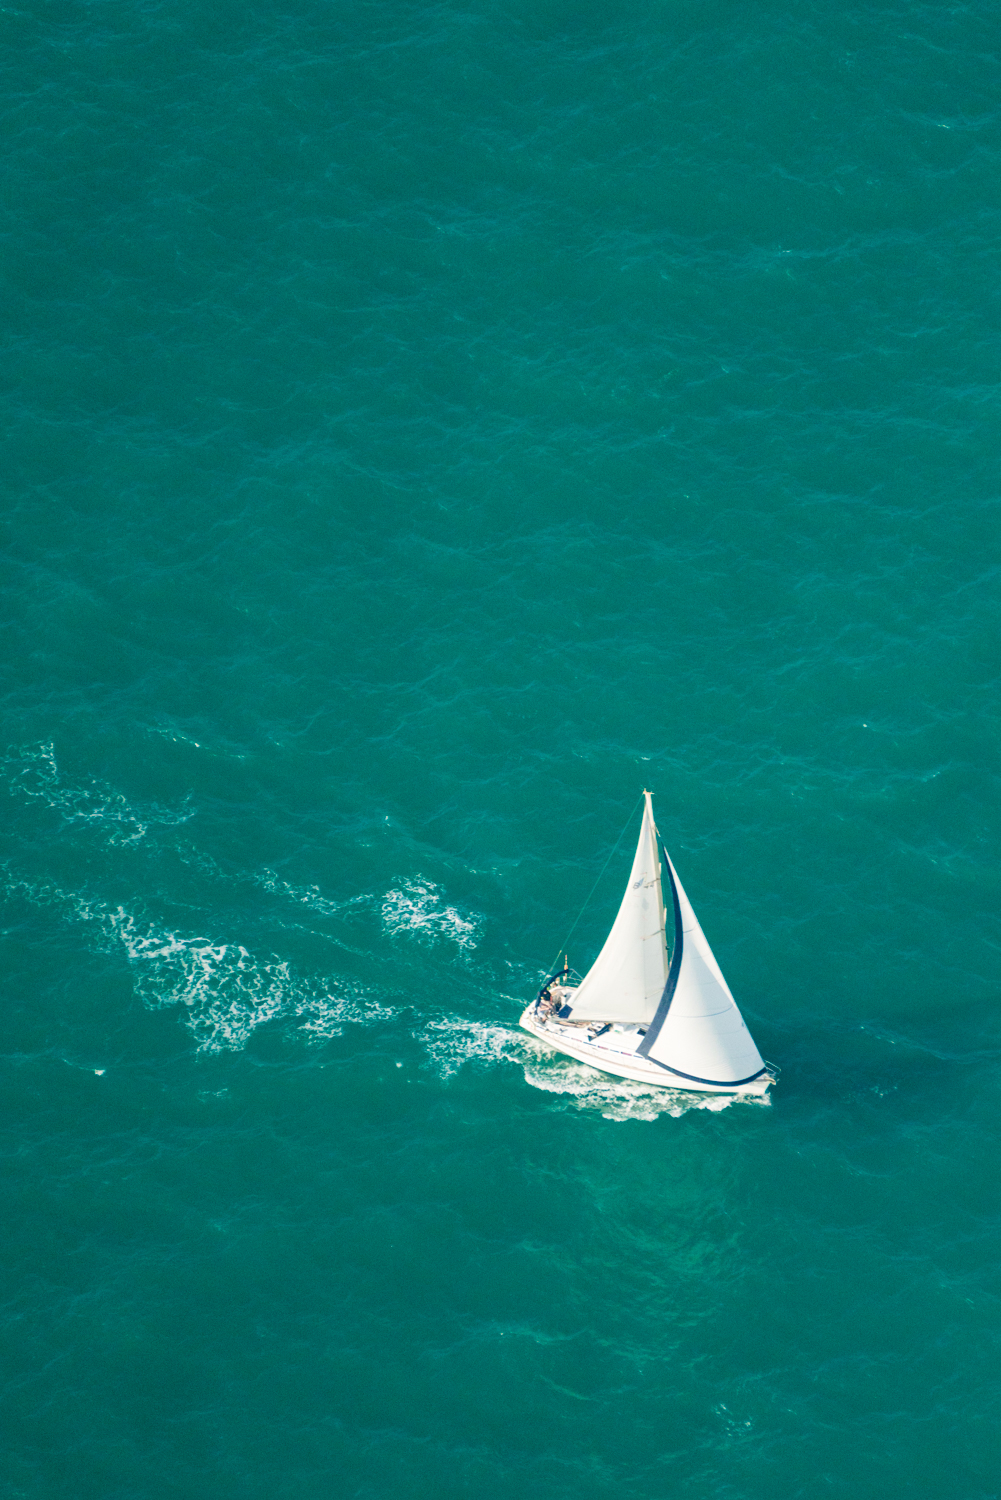 Probably nice to be sailing in these waters.  Sony A7RII, Sony 55-210mm f/4.5-6.3 (iso400, f/6.3, 1/2000s)